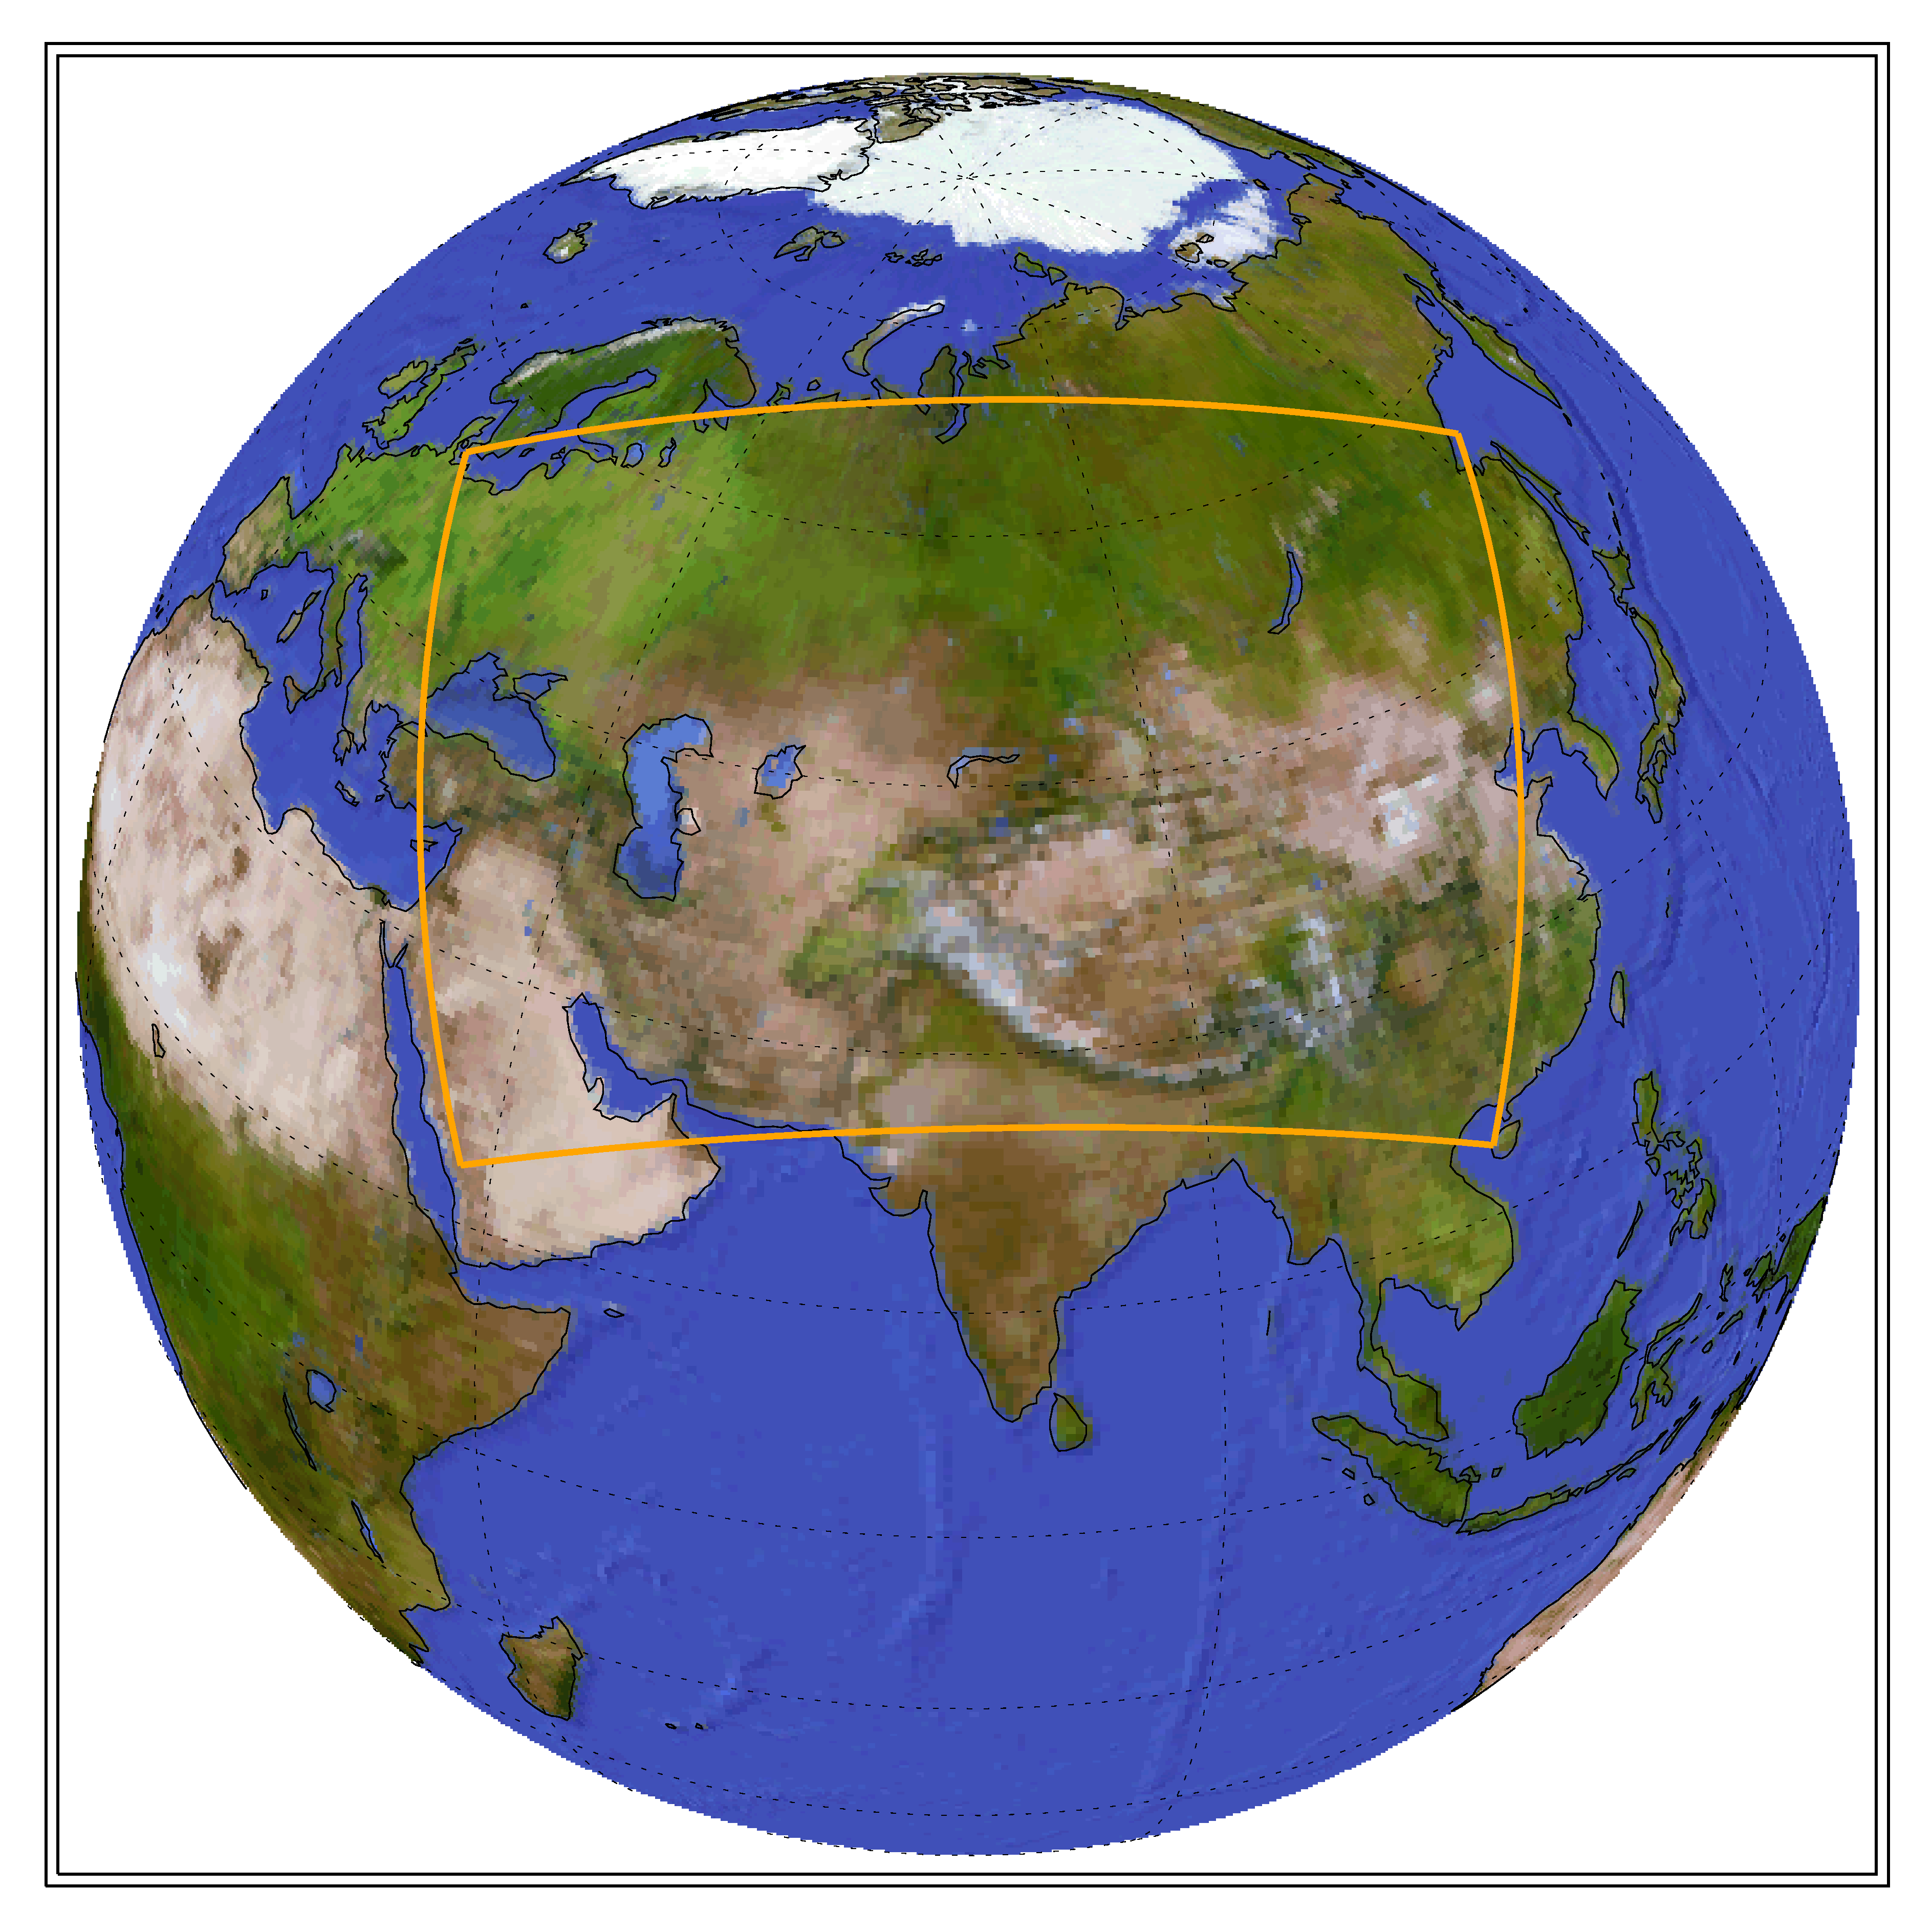 Globe showing the CORDEX domain of Central Asia